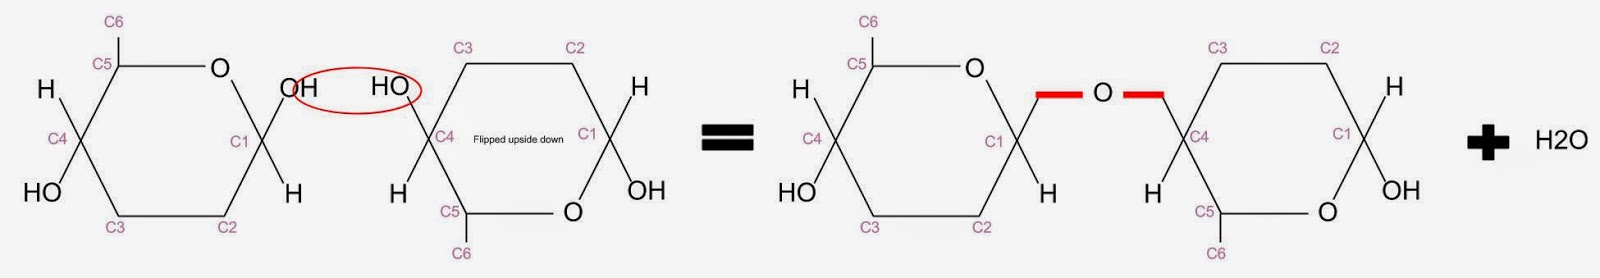 starch and glucose relationship